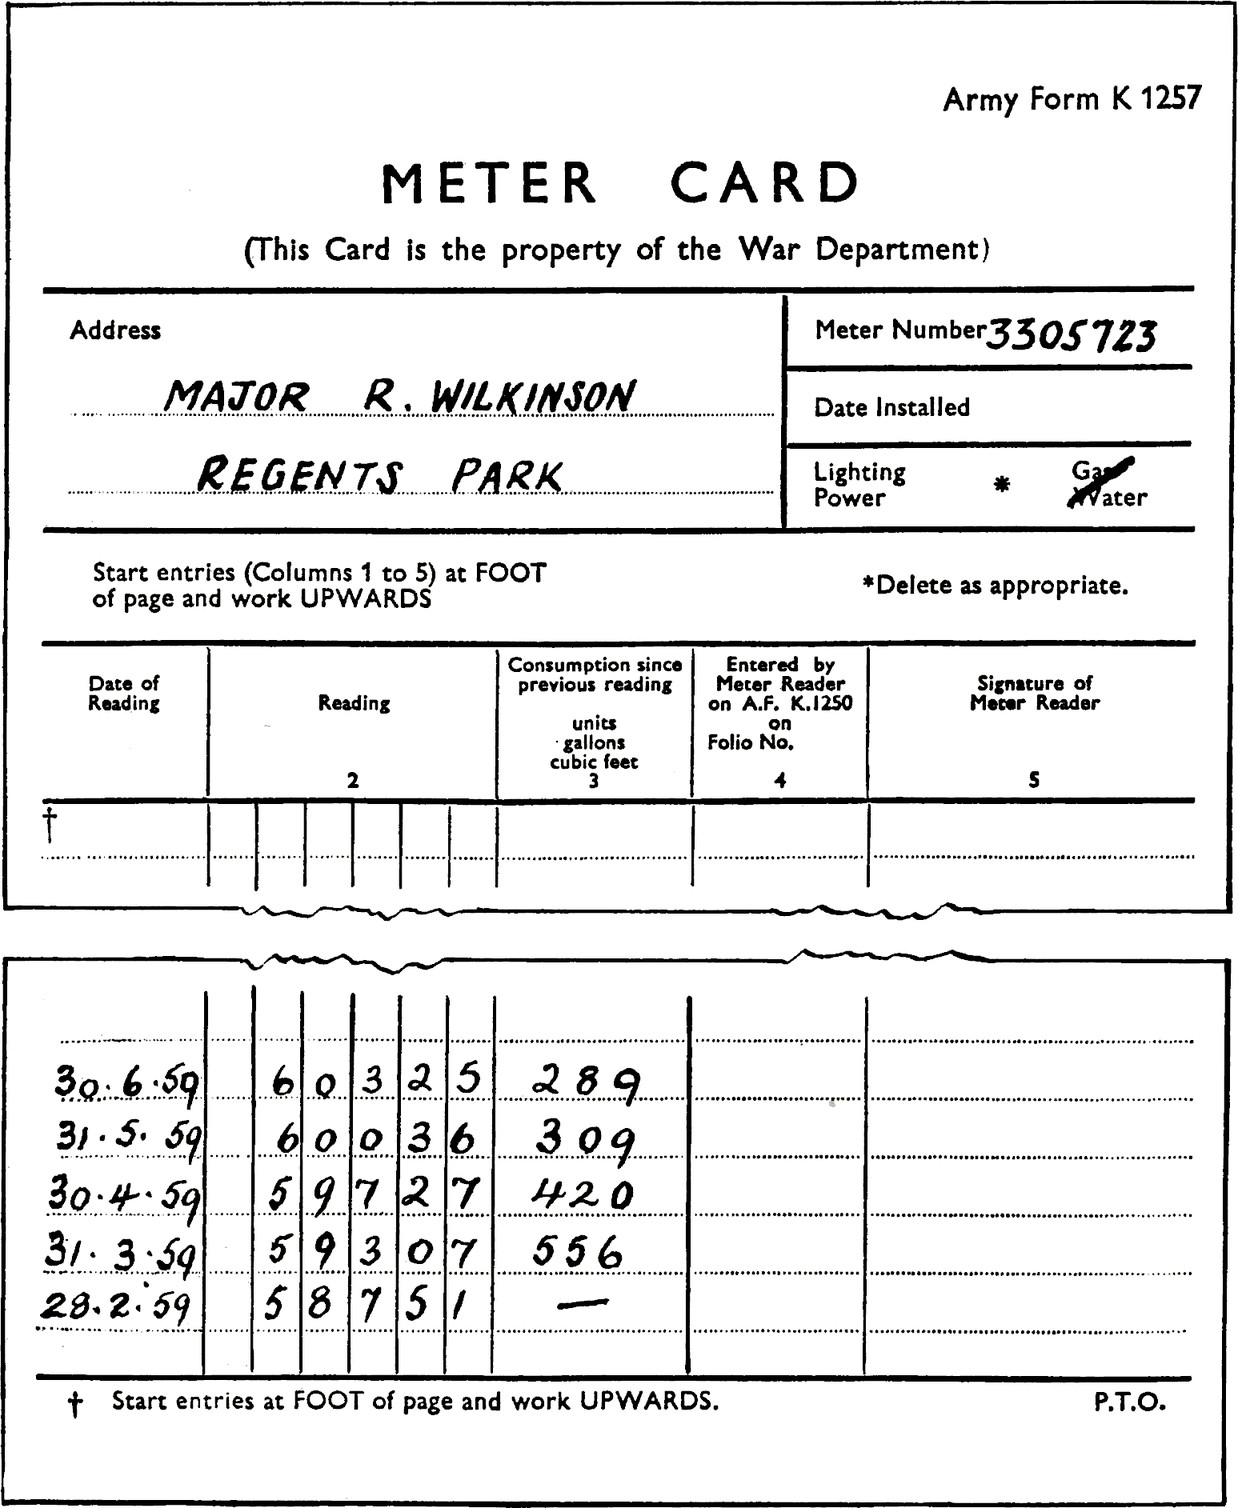 Army Form K 1257. METER CARD. (This Card is the property of the War Department). Address: Major R. Wilkinson, Regents Park. Meter Number: 3305723. Date Installed: blank field. Lighting power or Gas water (crossed out).* \* Delete as appropriate. Start entries (Columns 1 to 5) at FOOT of page and work UPWARDS. Table with 5 columns: Date of Reading, Reading, Consumption since previous reading units gallons cubic feet, Entered by Meter Reader on AF. K.1250 on Folio No., Signature of Meter Reader. Entries are at the bottom of the form. Date: 39.6.59, Reading: 60325, Consumption: 289. Date: 31.5:59, Reading: 60036, Consumption: 309. Date: 30.4:59, Reading: 59727, Consumption: 420. Date: 31.3:59, Reading: 59307, Consumption: 556. Date: 28.2:59, Reading: 58751, Consumption: dash.